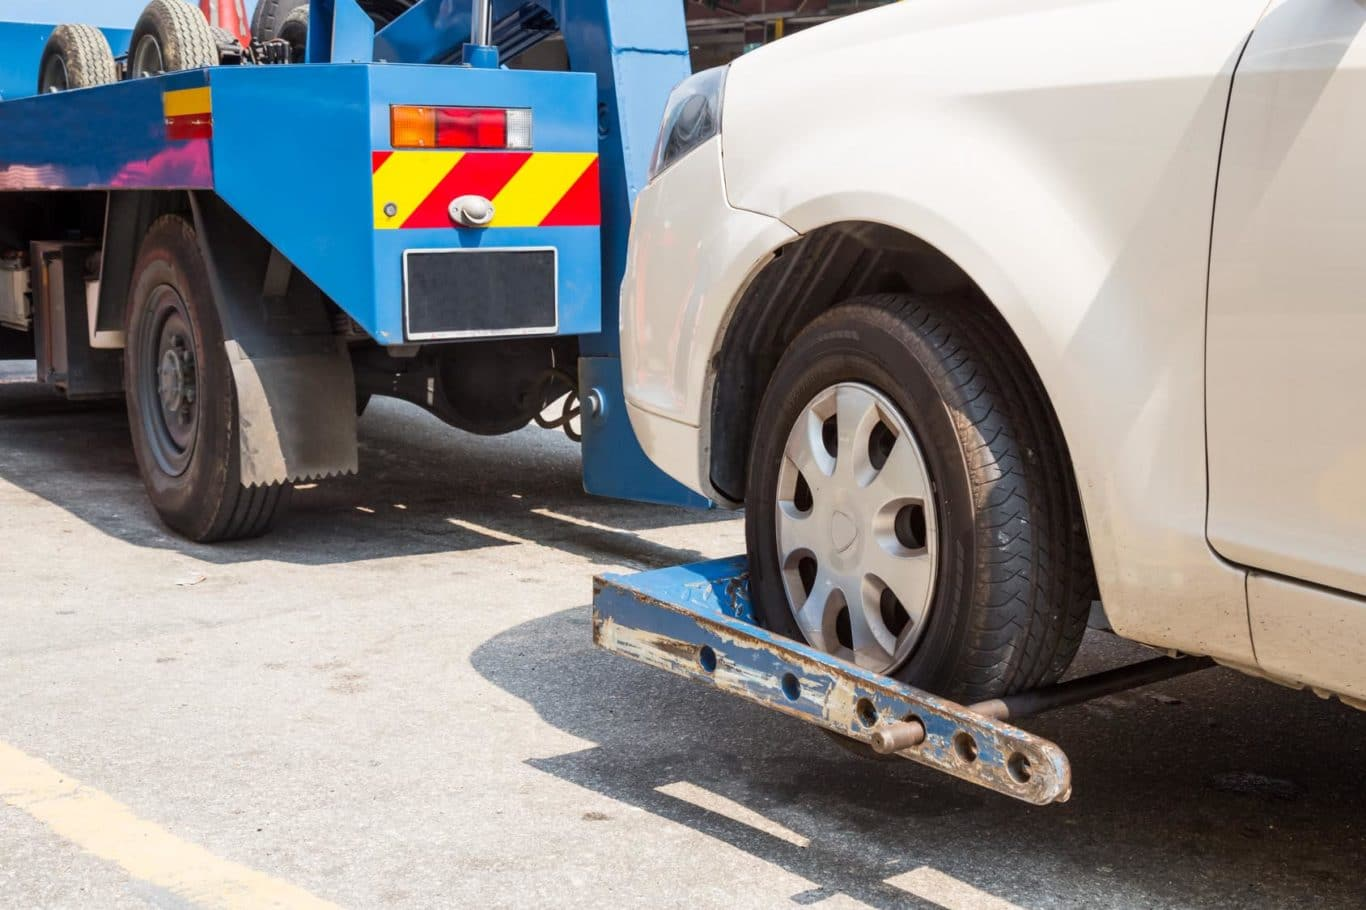 Portobello expert Towing And Recovery Dublin services